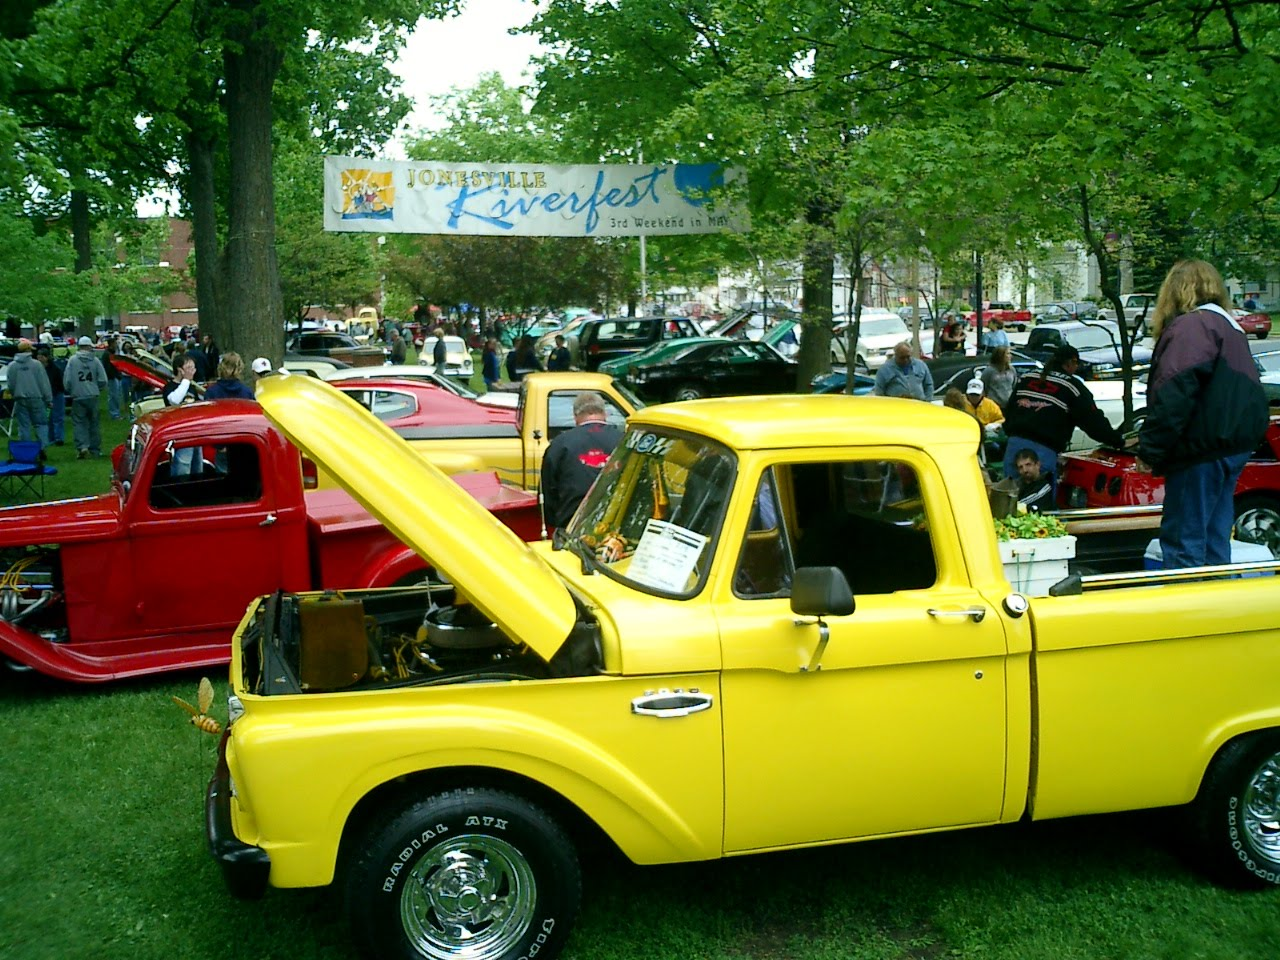 jonesville-michigan-riverfest-car-show